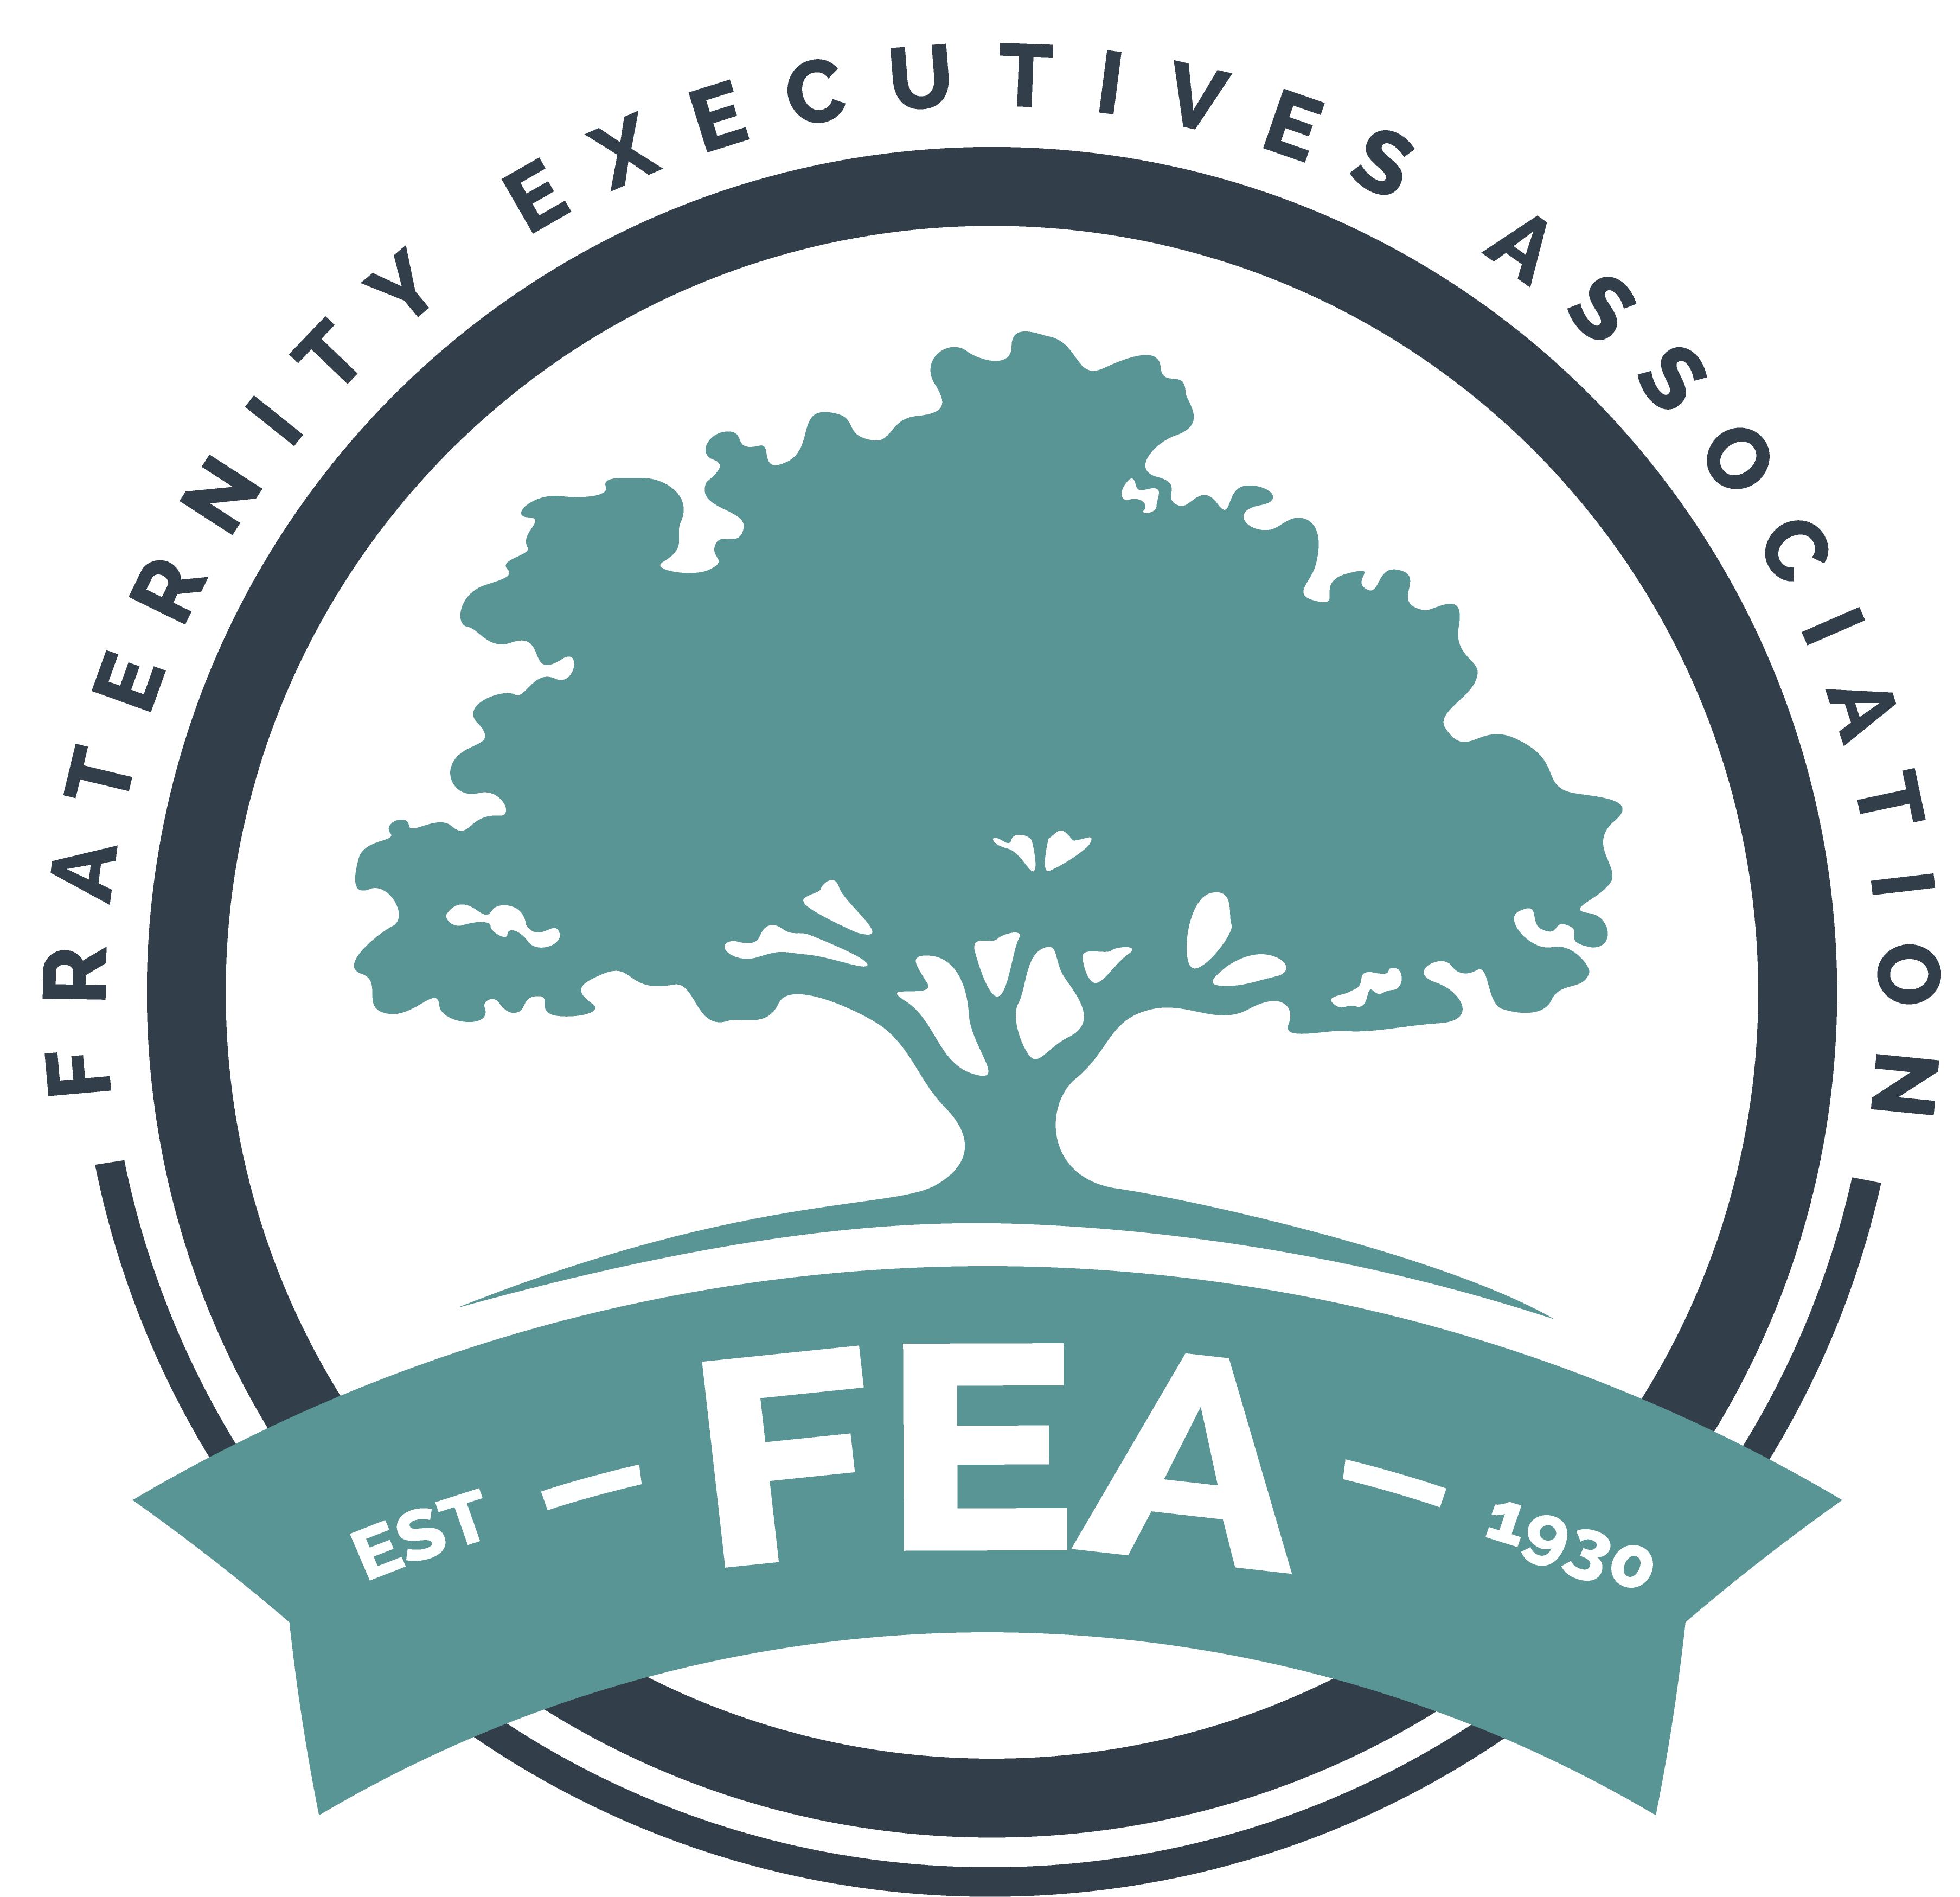 Conference clipart executive meeting. Fraternity executives association annual